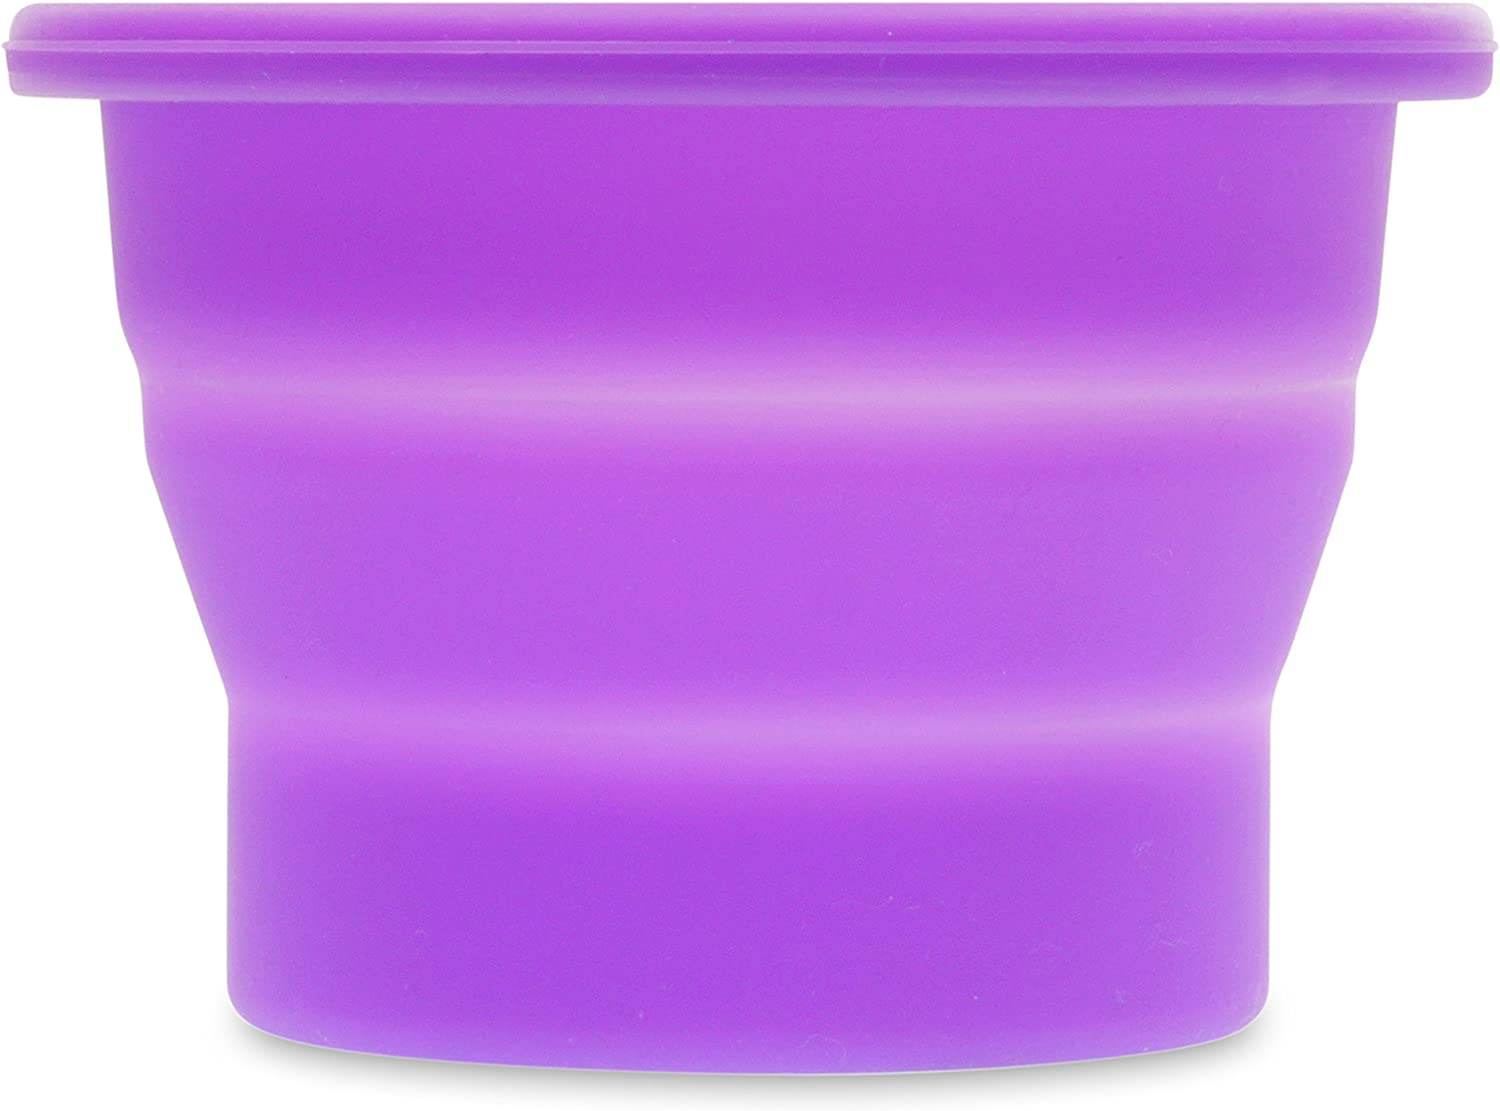 Anigan Collapsible Silicone Sterilizing Cup Designed for Sanitation and Storing Menstrual Cups, Lavendar